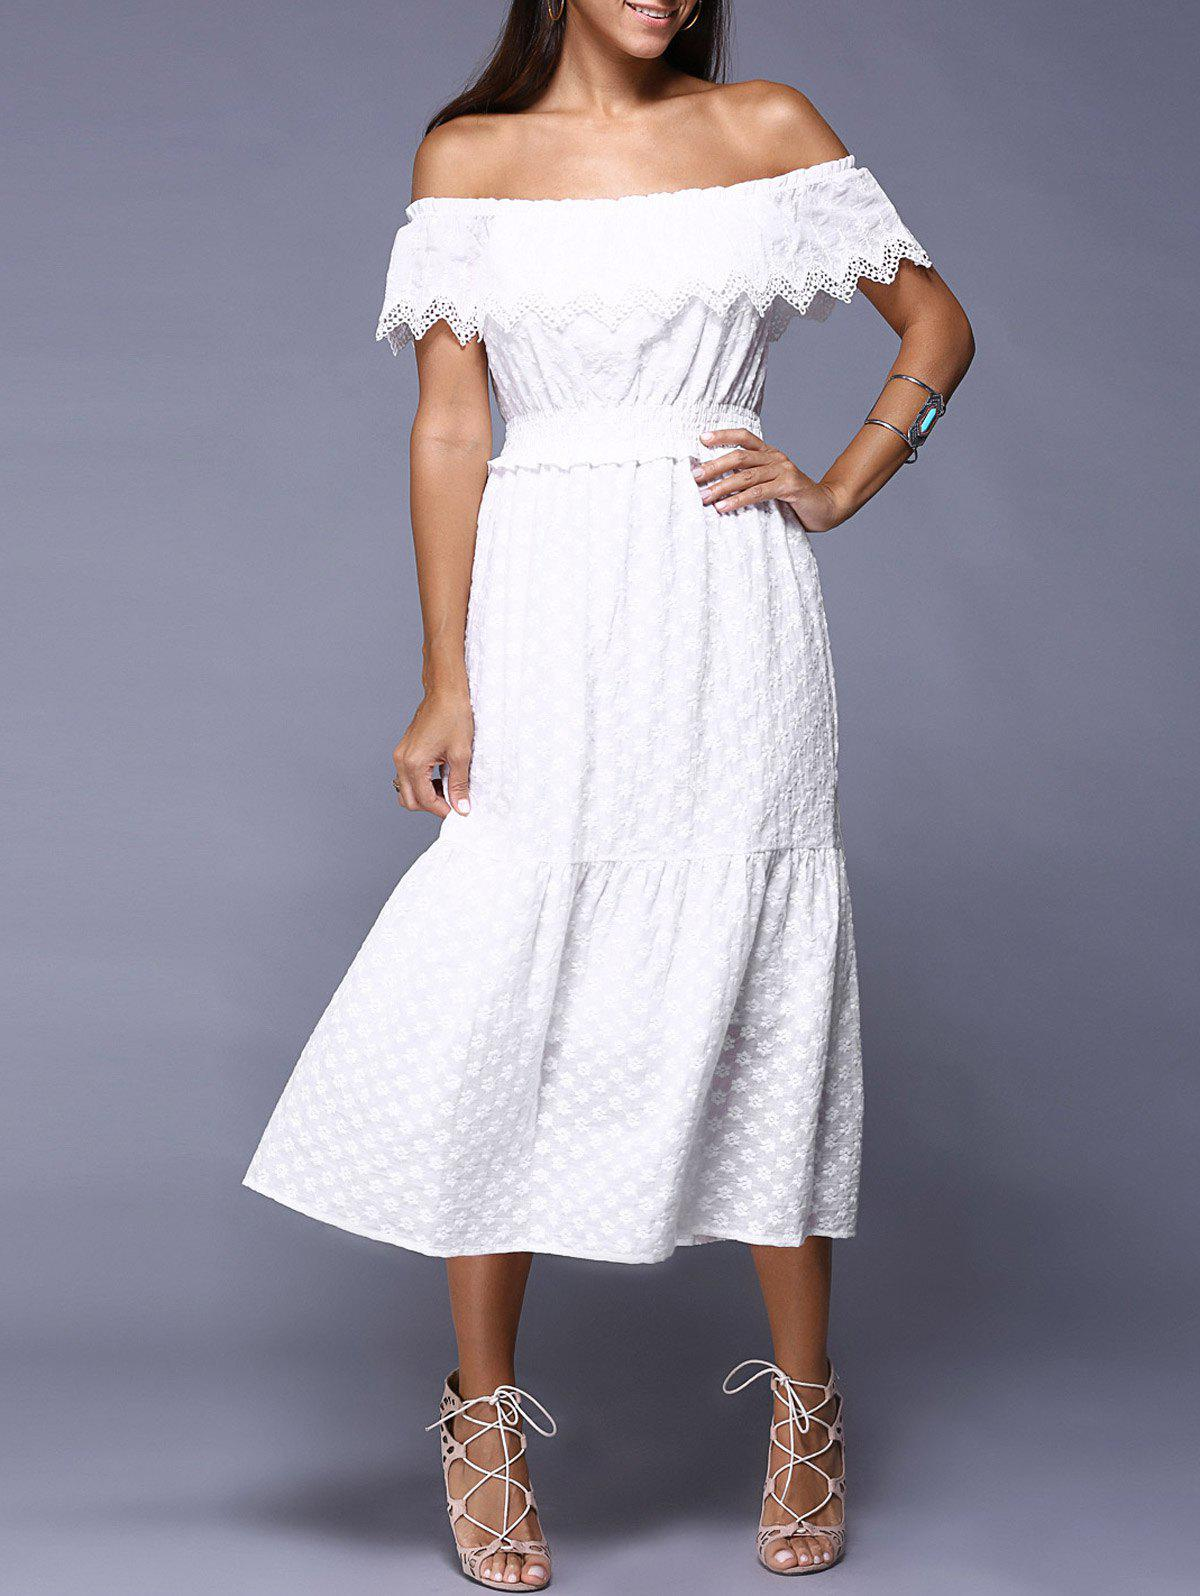 Sweet Off-The-Shoulder Overlay Jacquard Dress For Women - WHITE ONE SIZE